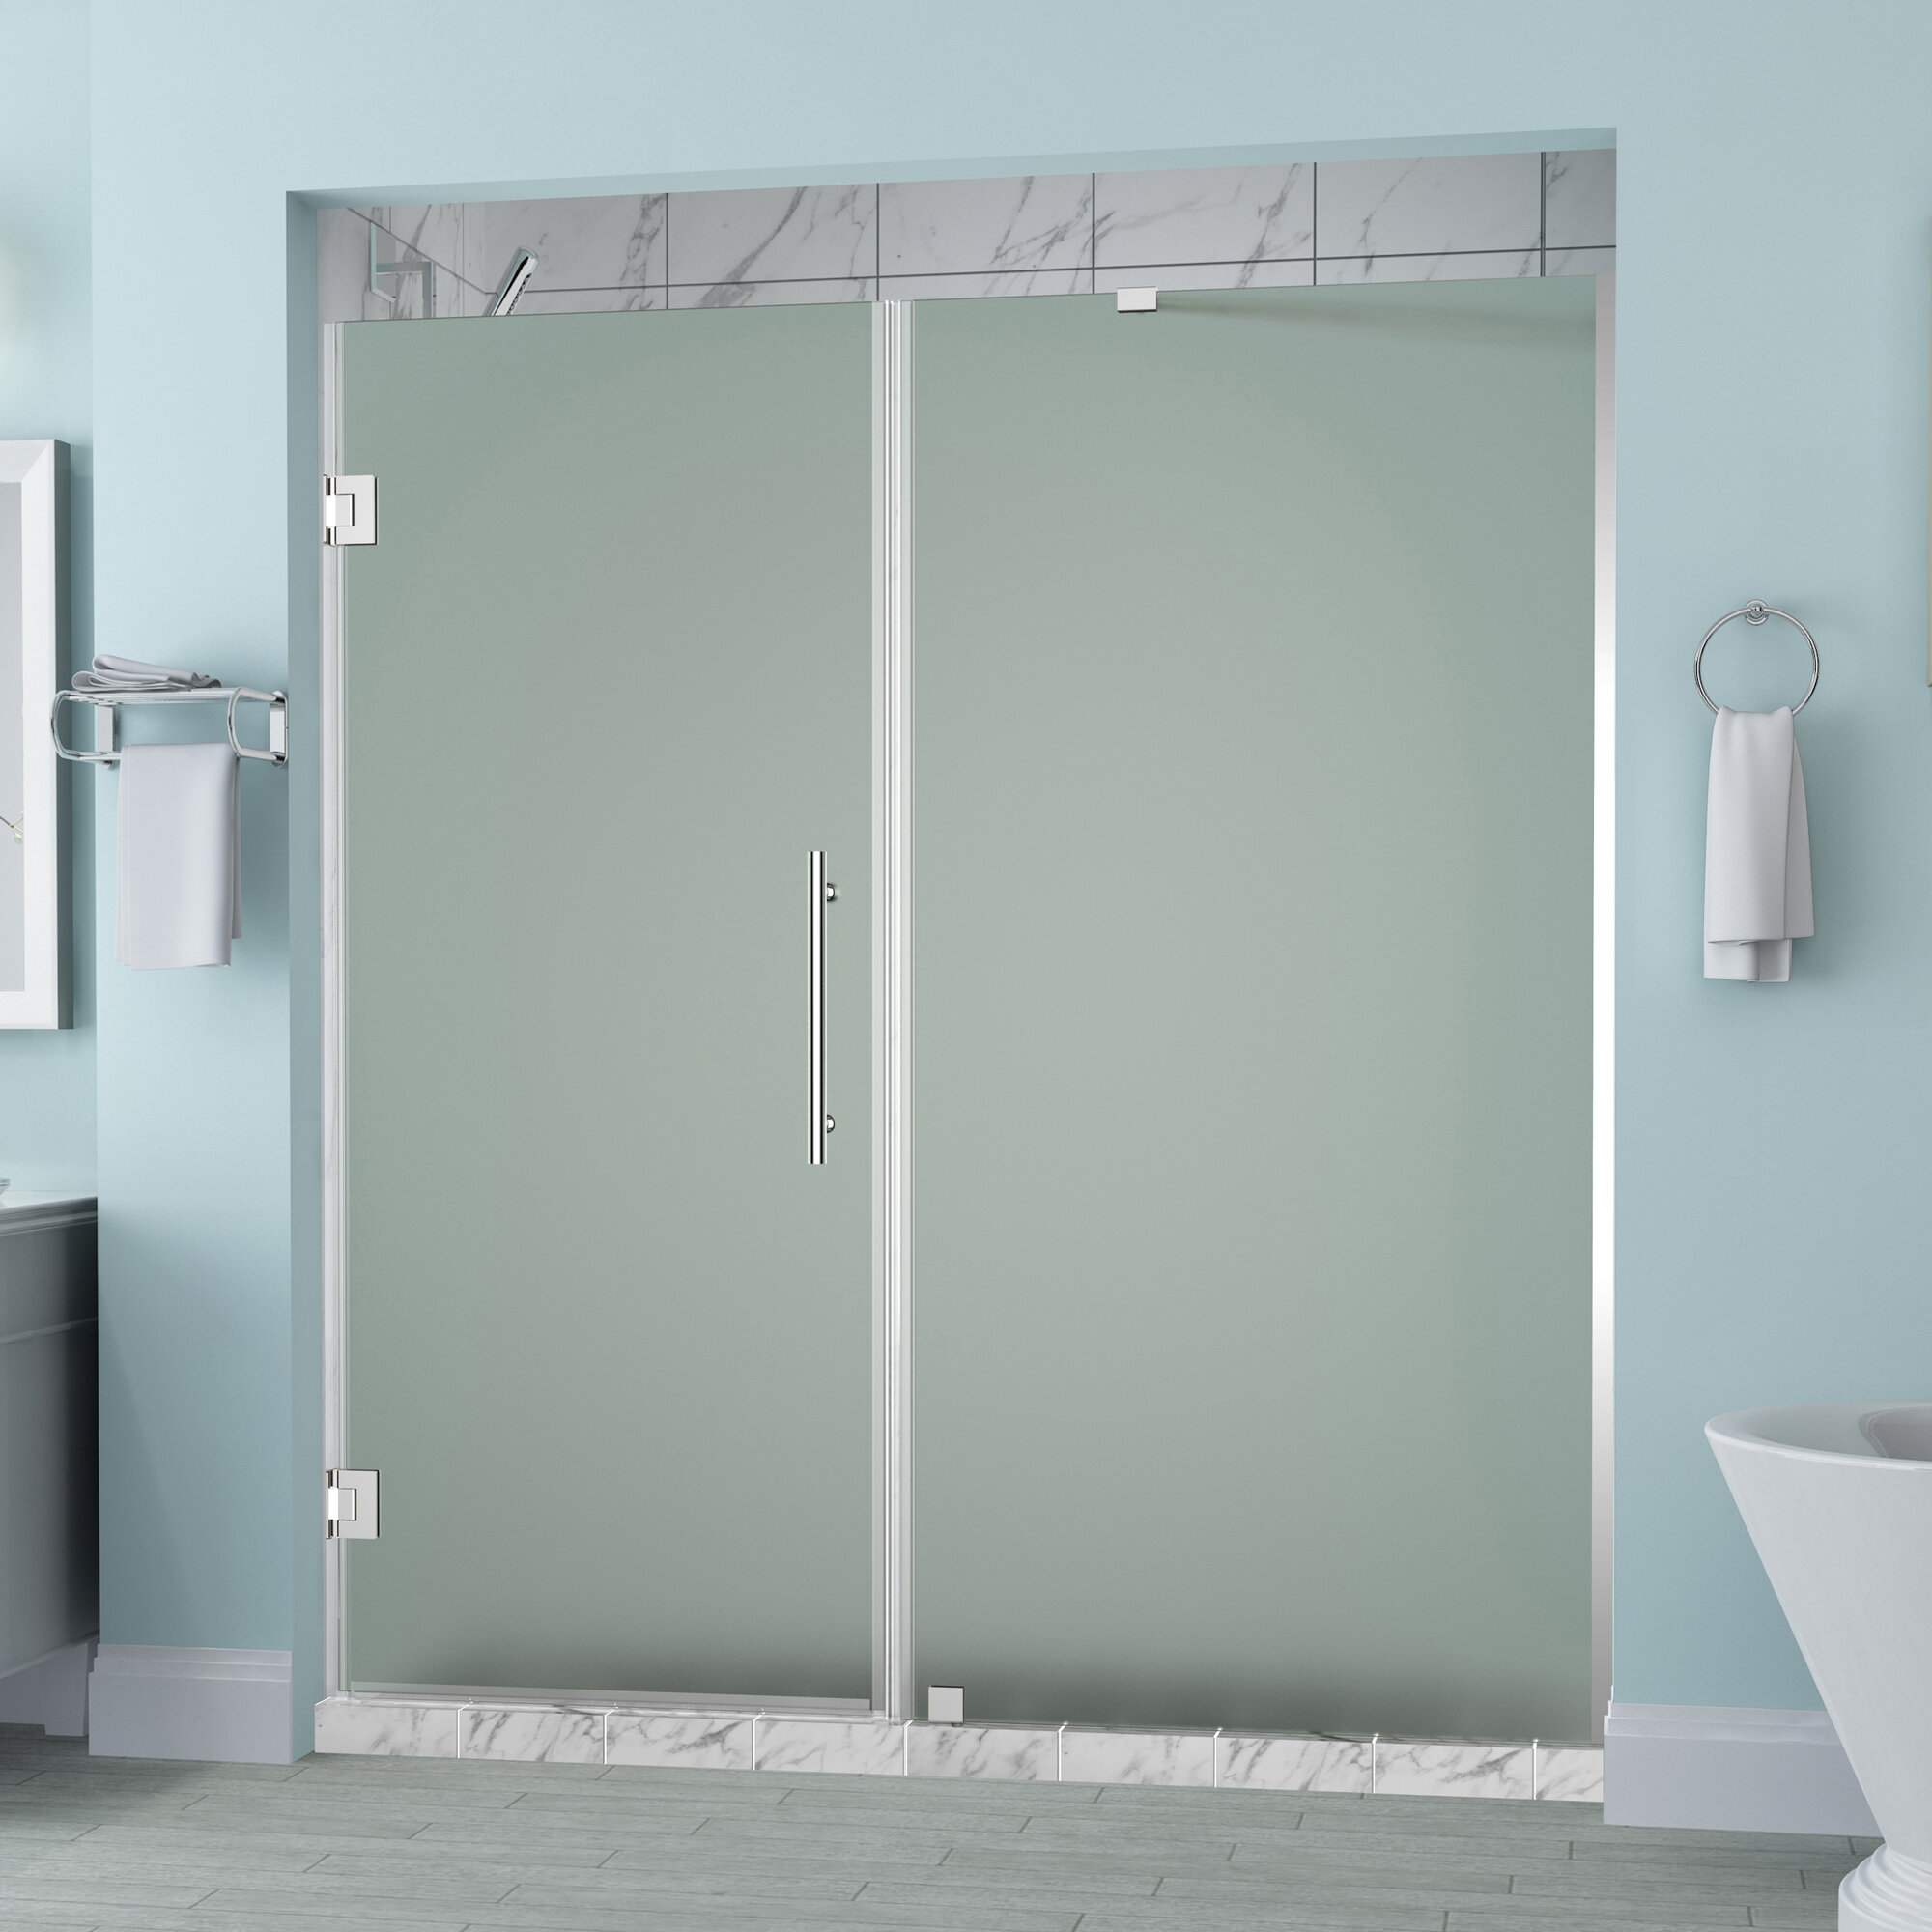 Details About Aston Belmore 62 X 72 Hinged Frameless Shower Door Oil Rubbed Bronze Frosted